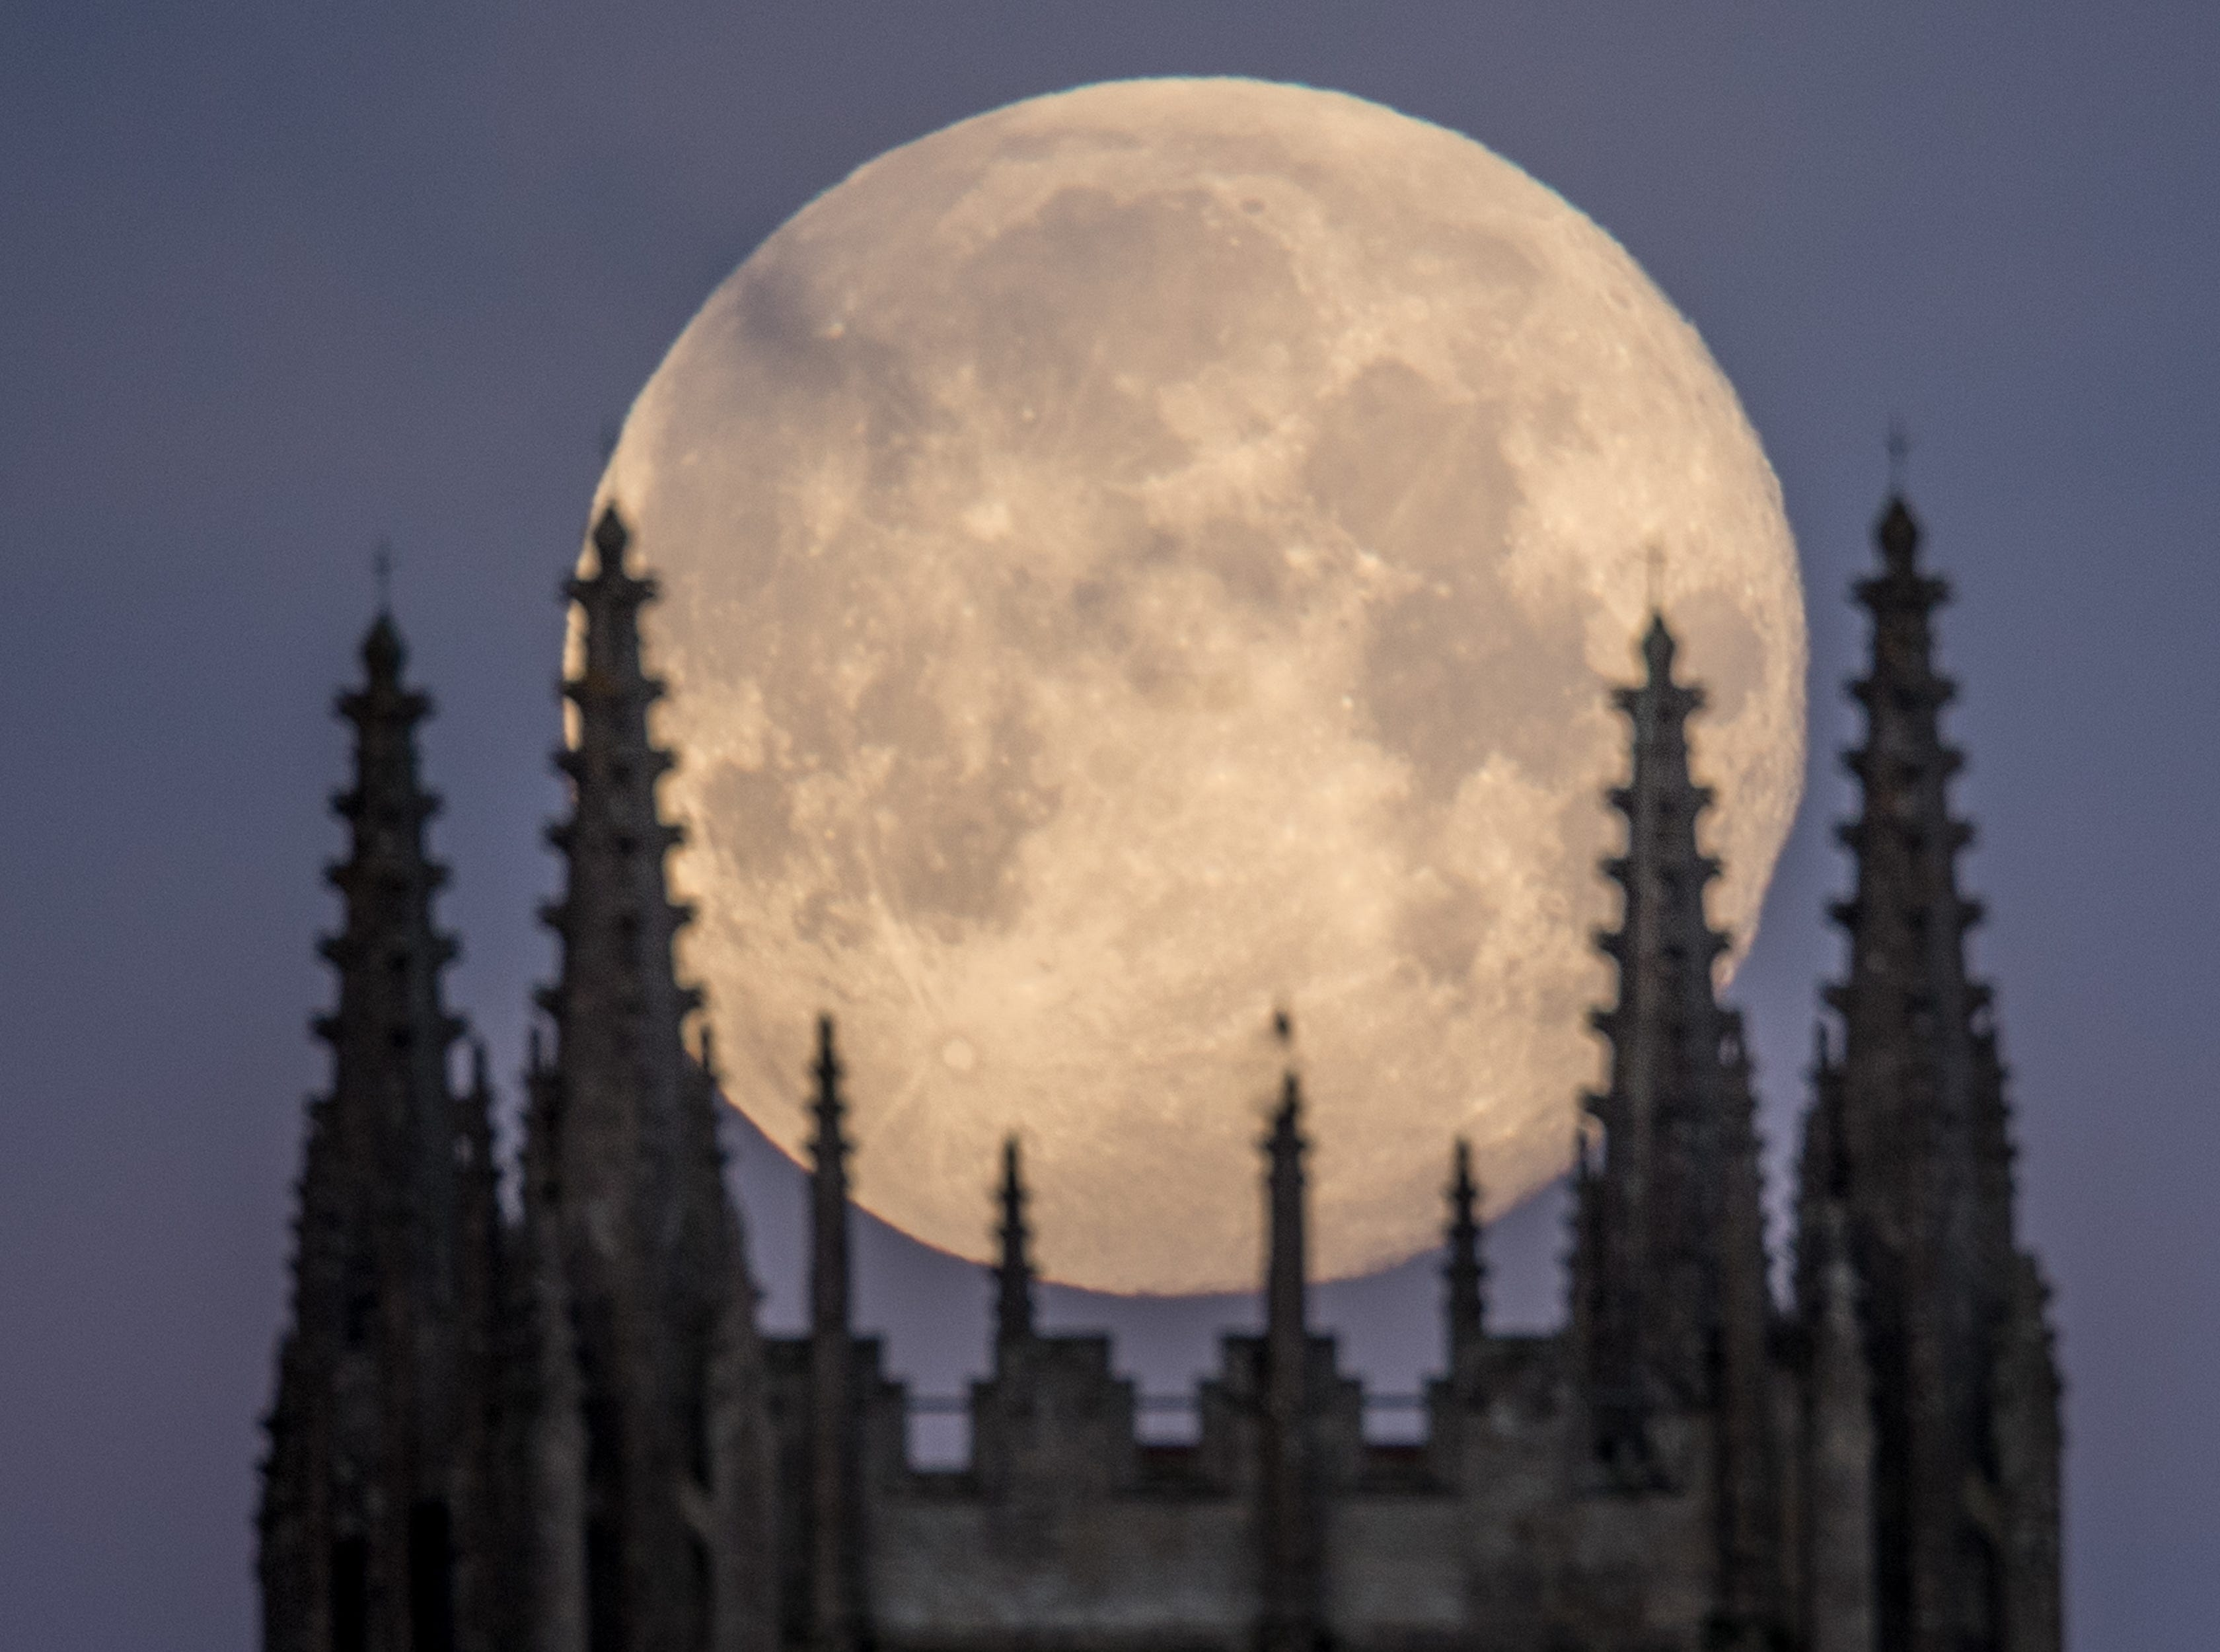 A Super Blue Blood Moon sets behind Downside Abbey, a Benedictine monastery, in Stratton-on-the-Fosse on Feb. 1, 2018, in Somerset, England. It was the second full moon in January, close to its nearest point to Earth on its orbit, and was totally eclipsed by the Earth's shadow. The last time these events coincided was in 1866.